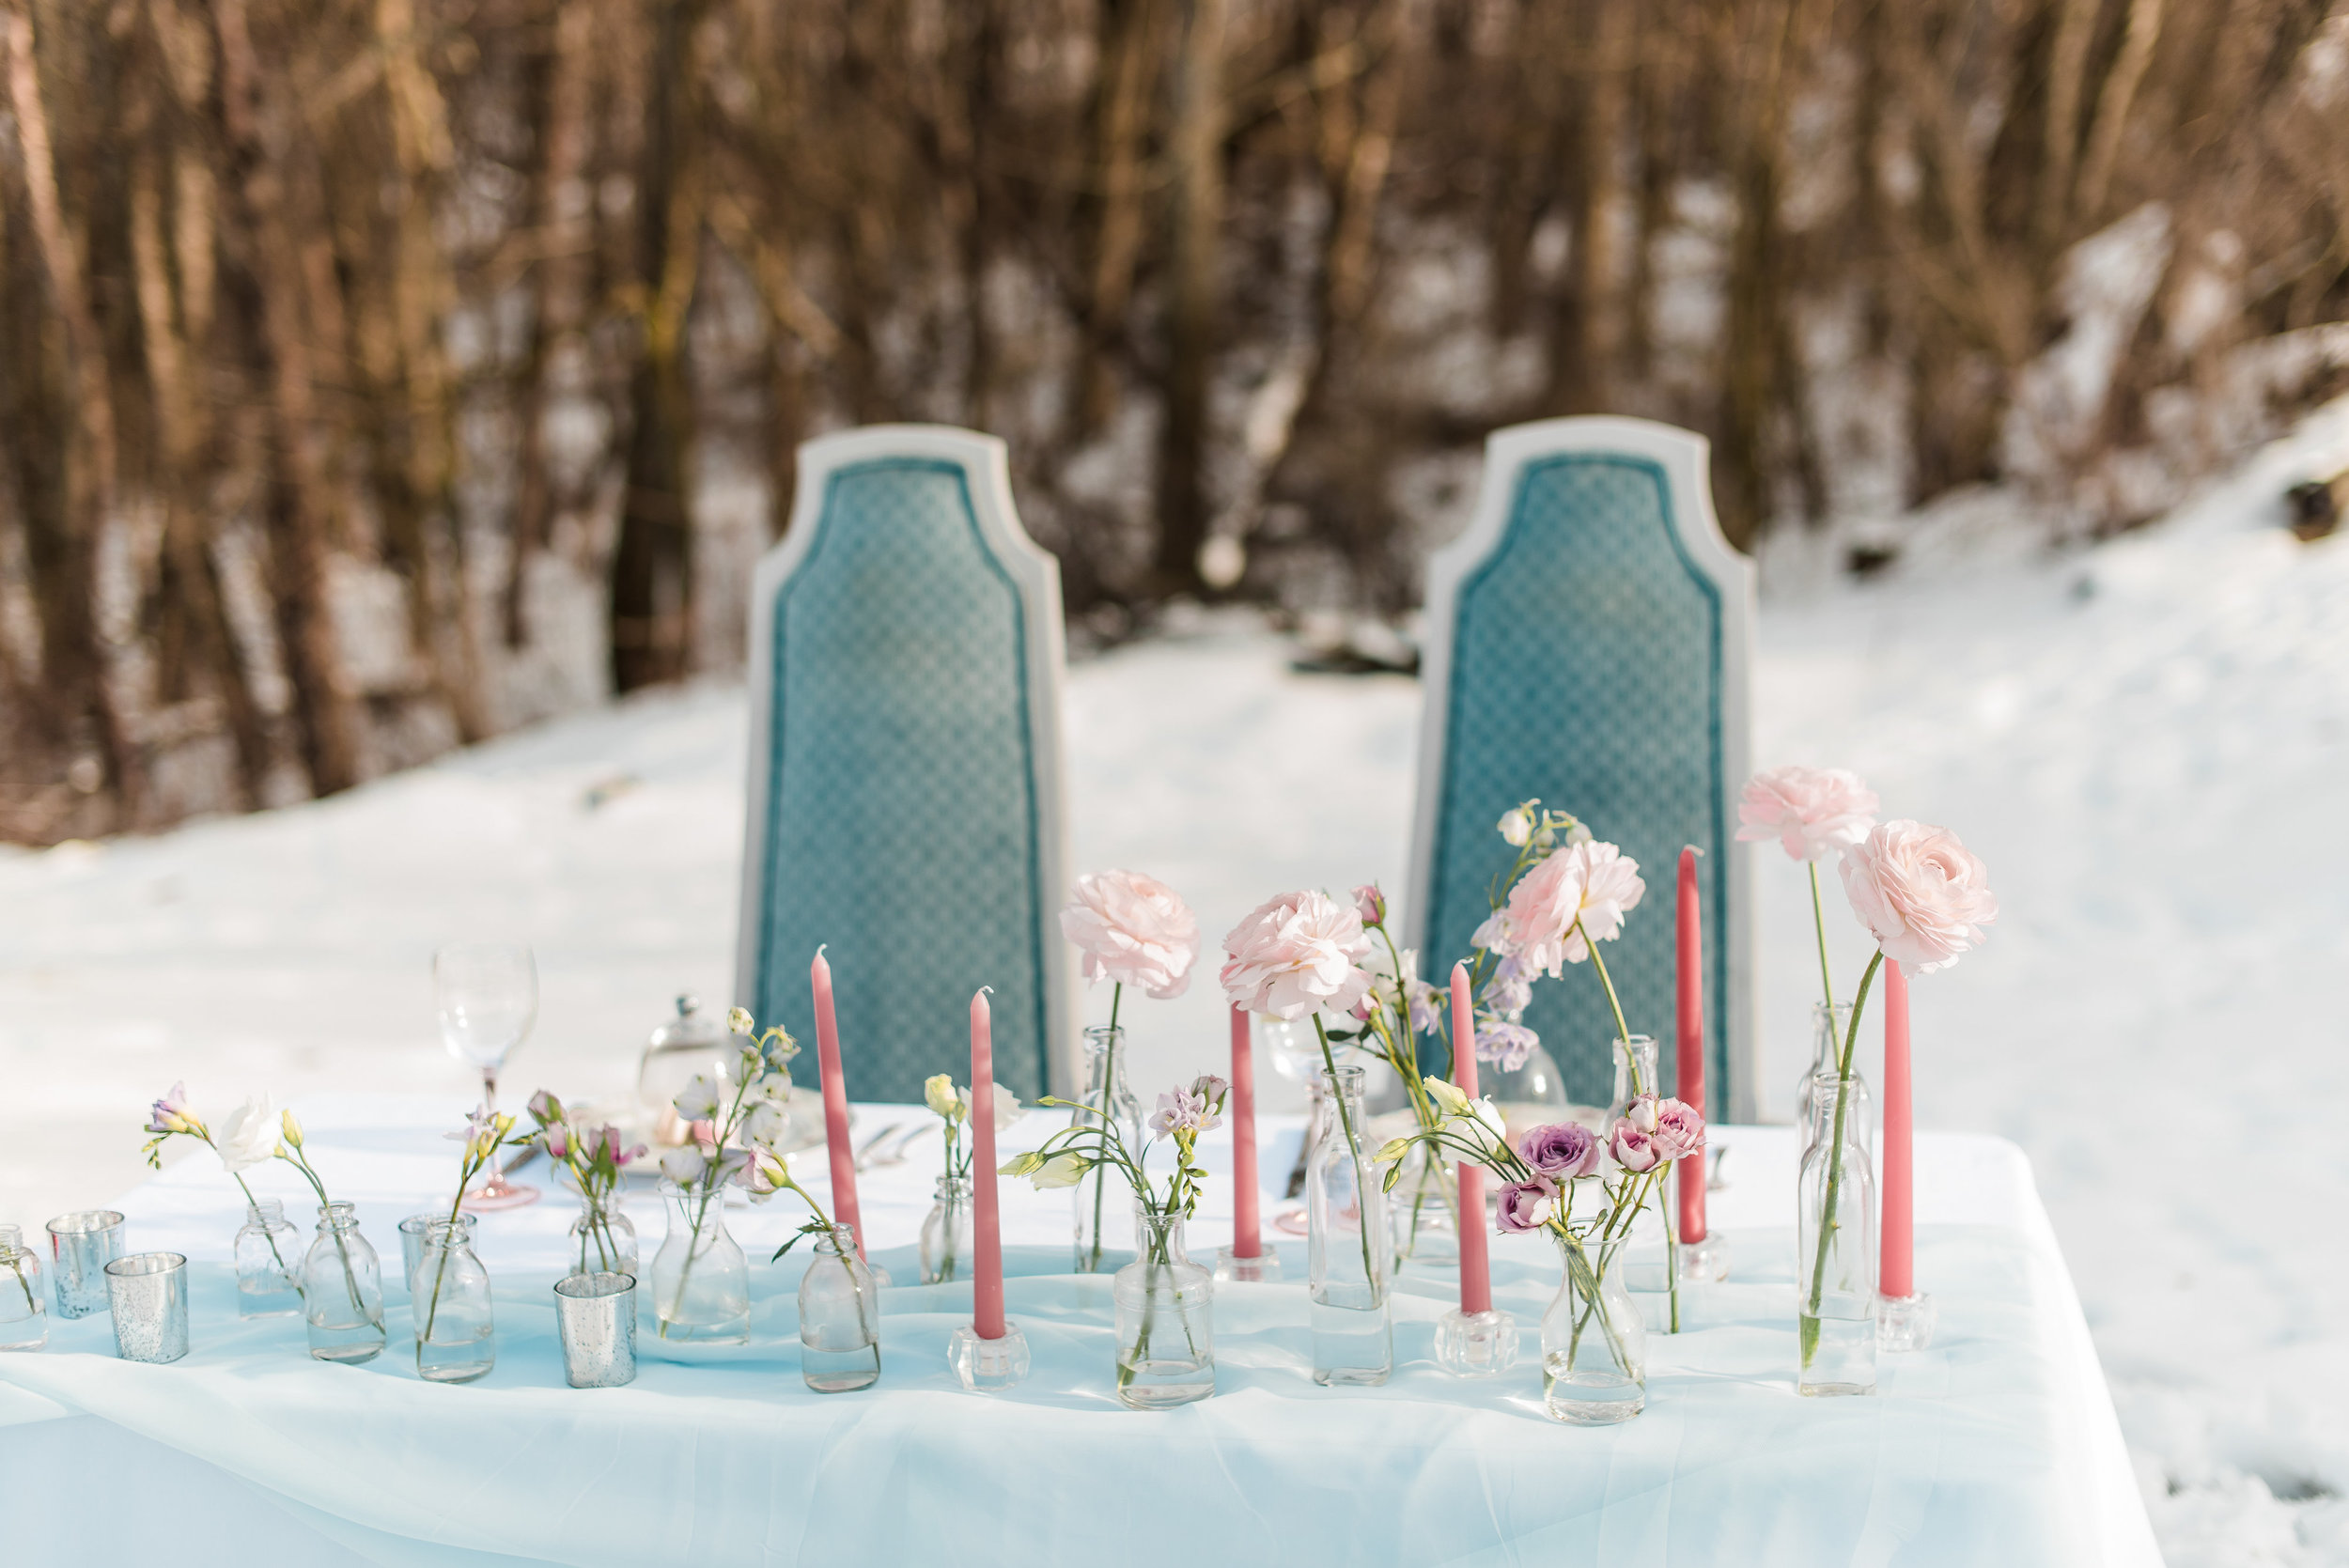 winter-romantic-snowy-pastel-pennsylvania-pittsburgh-wedding-styled-shoot-0003.jpg